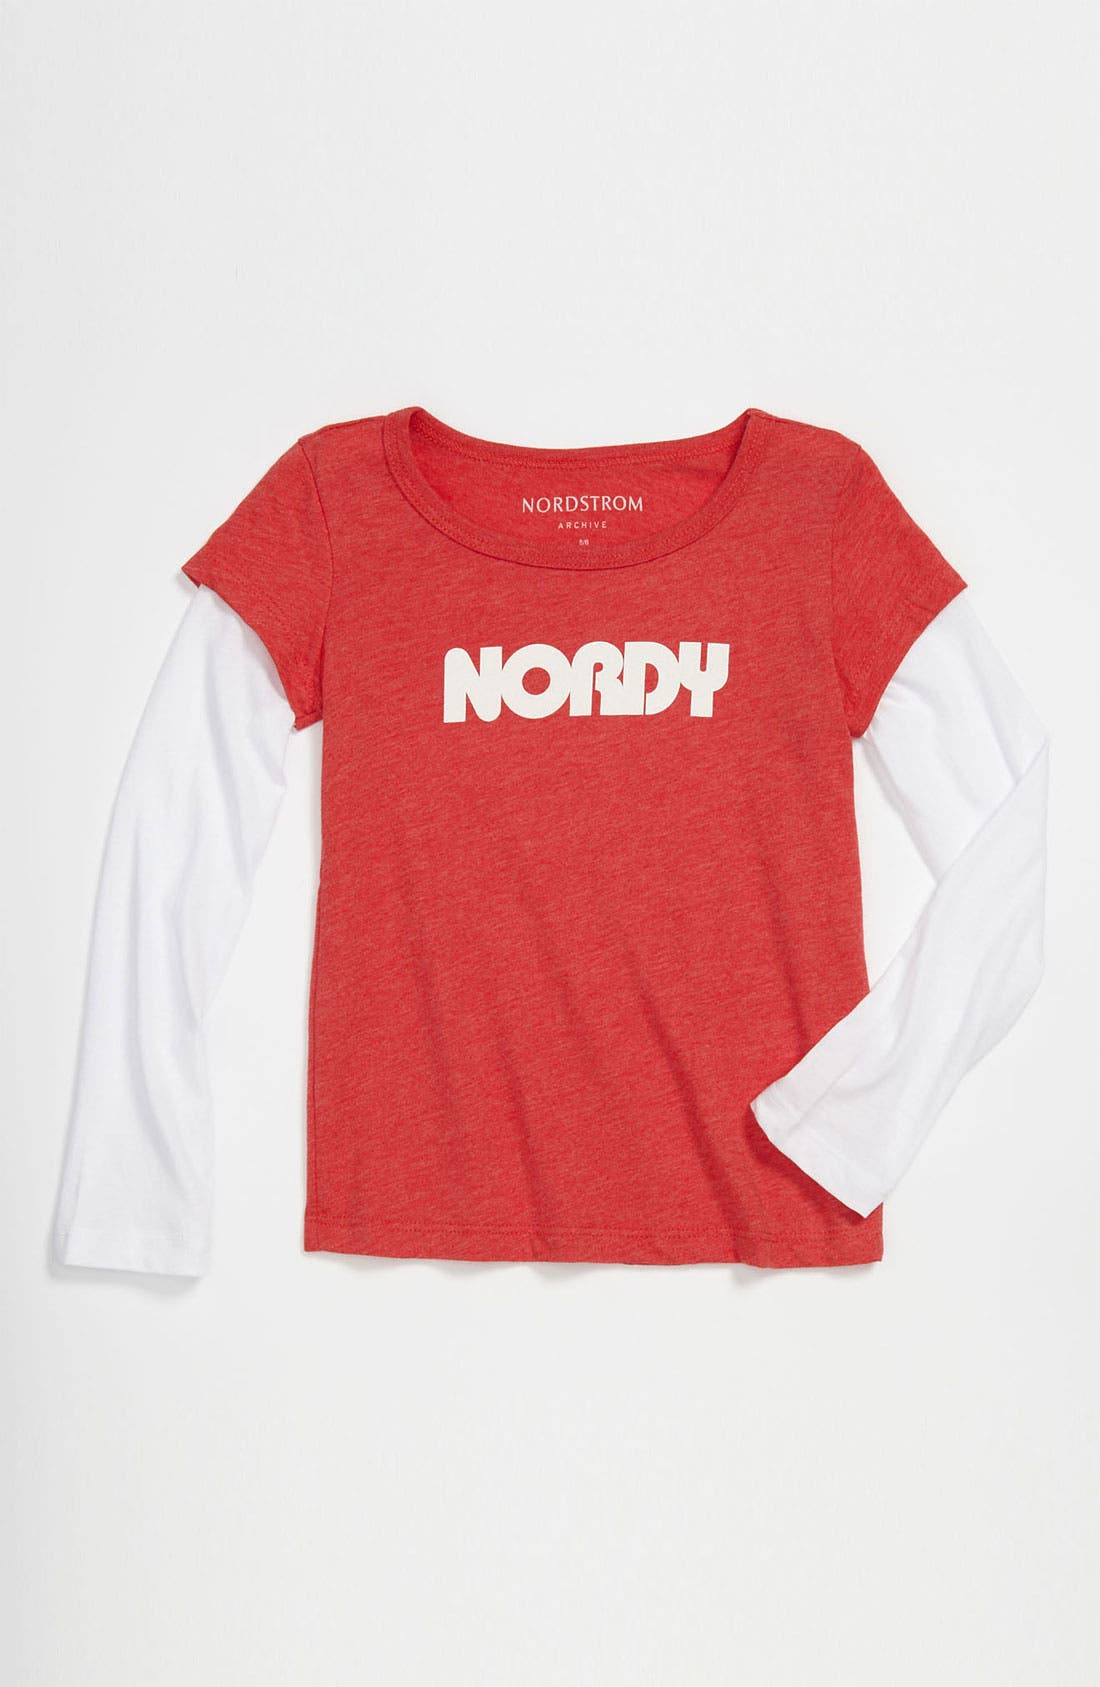 Main Image - Nordstrom 'Nordy' Tee (Toddler)